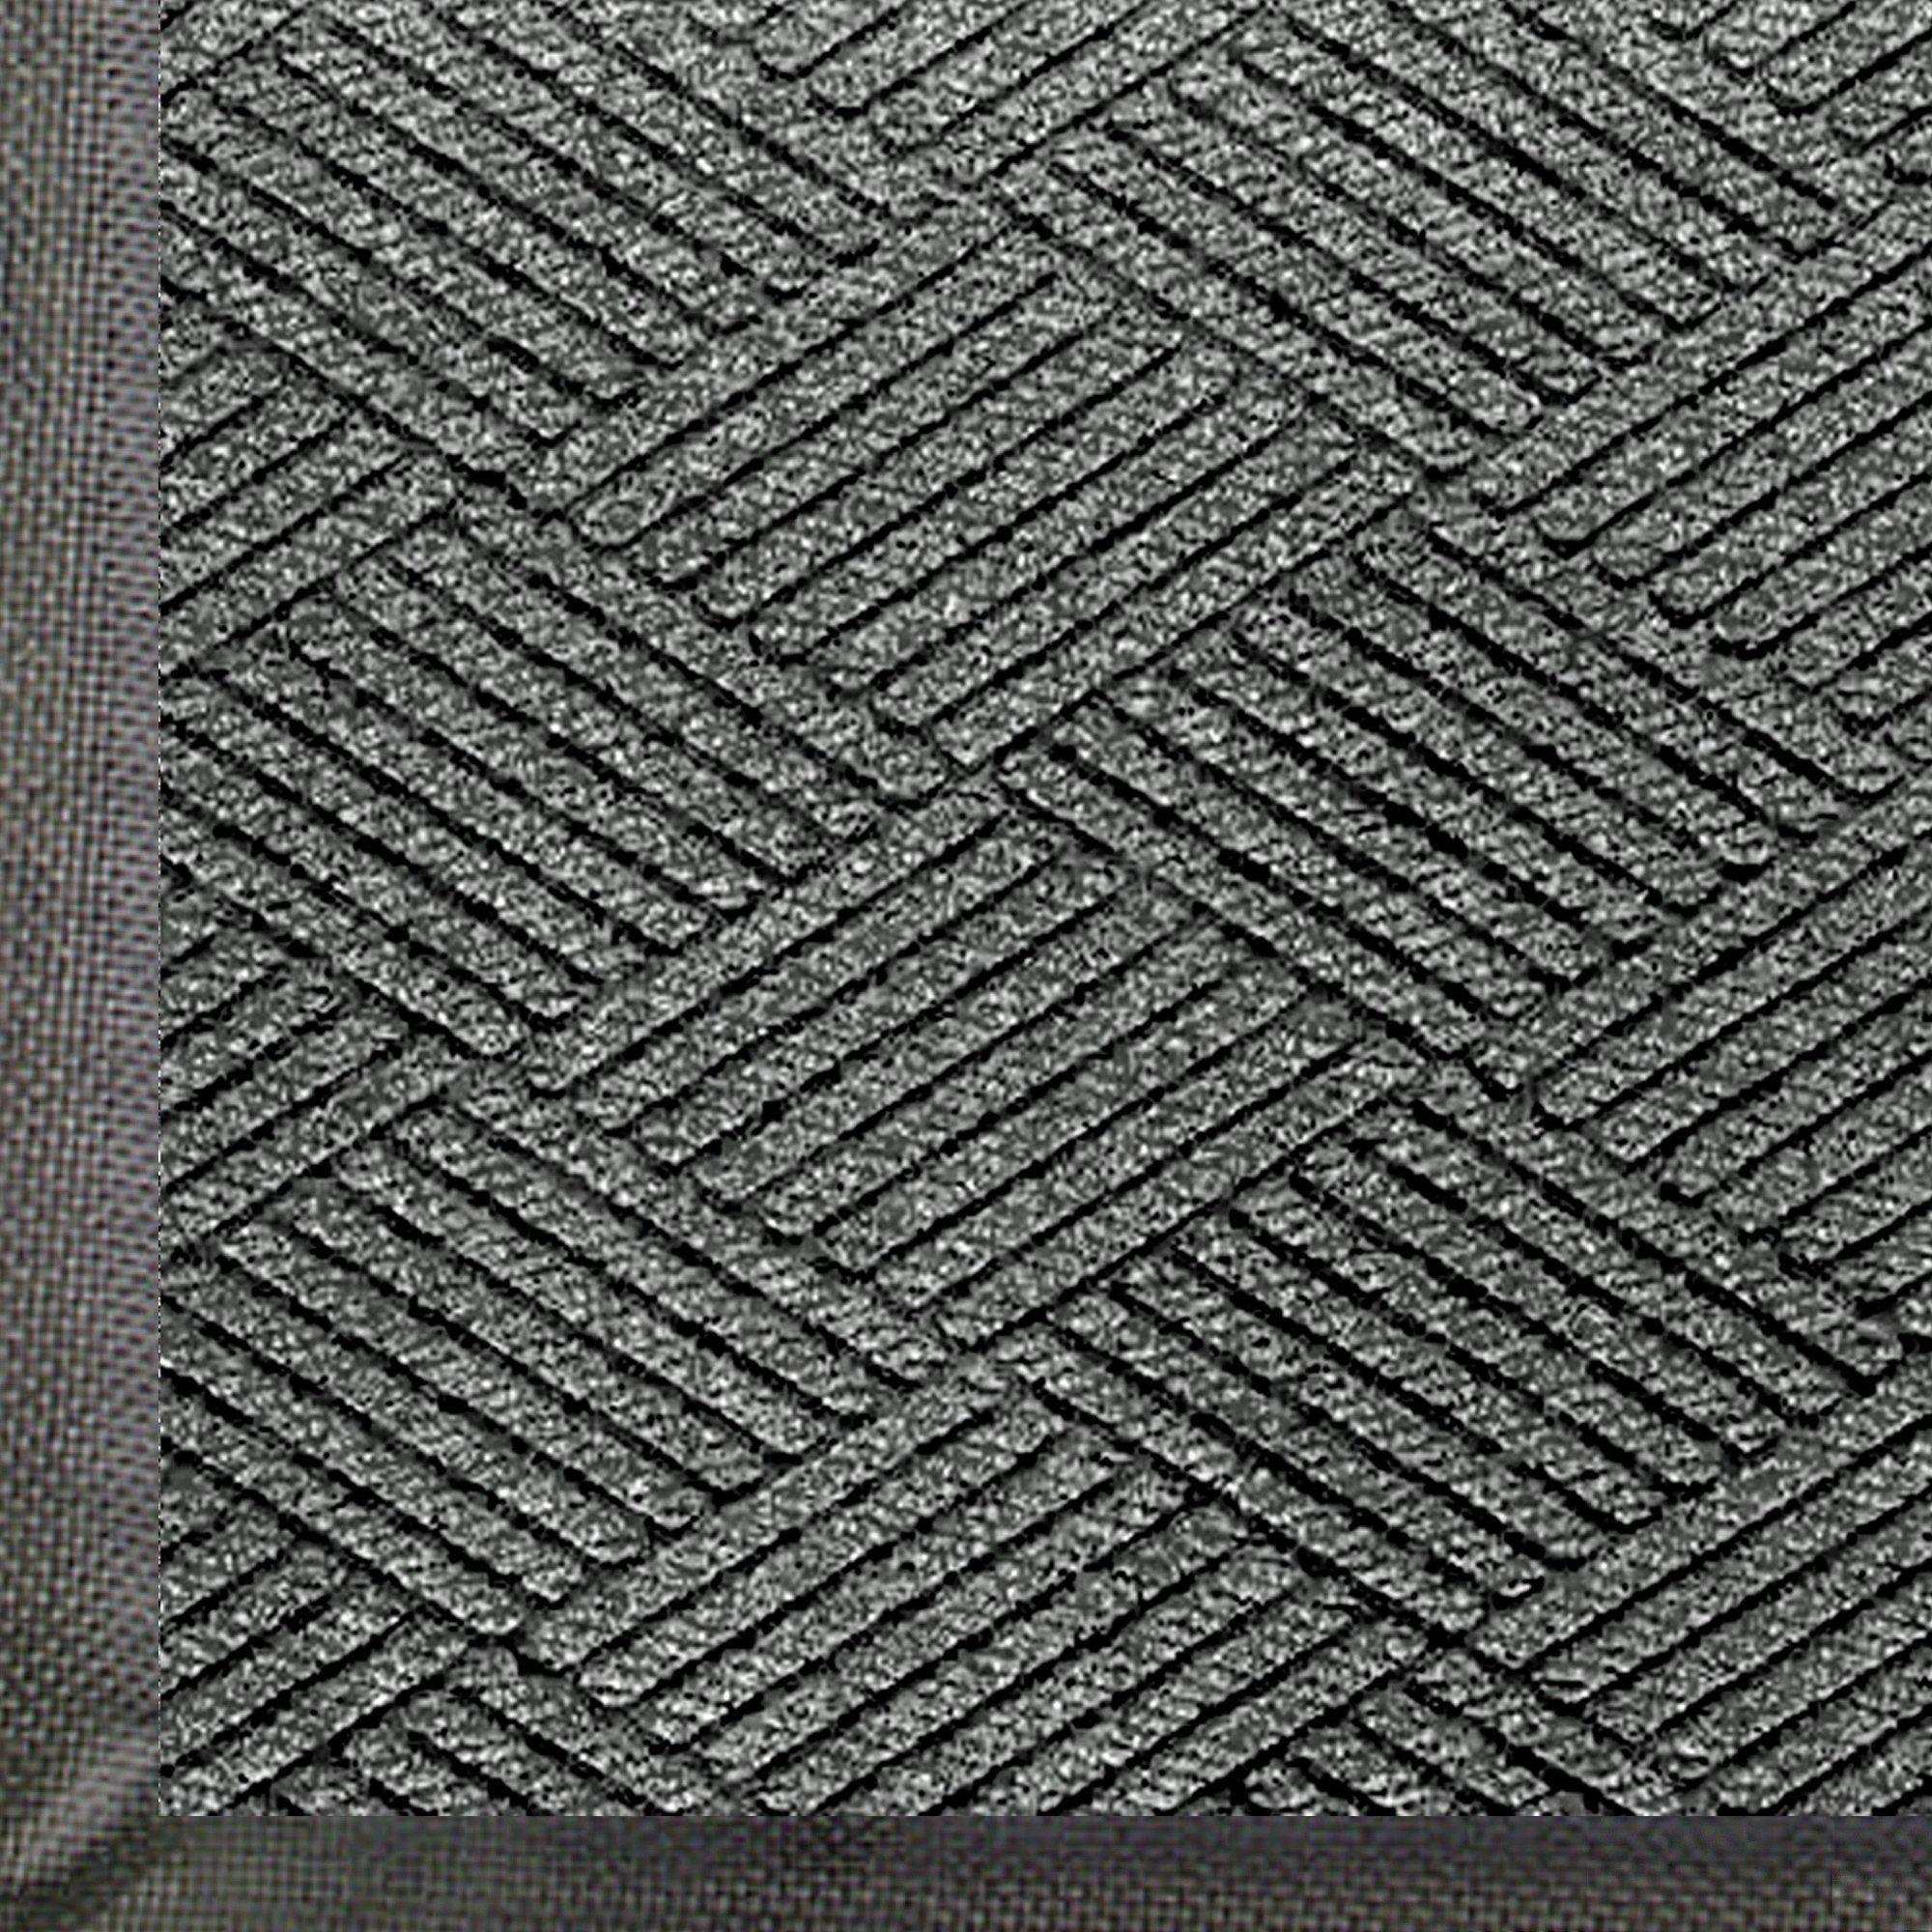 christmas back mats front ll bean decoration absorbing rug rubber hardwood backed your home for foyer do holiday mat waterhog review ideas dog come best with door floor are funny water warrant damage hog indoor entry pads entrance stunning entryway flooring floors rugs doormat doormats